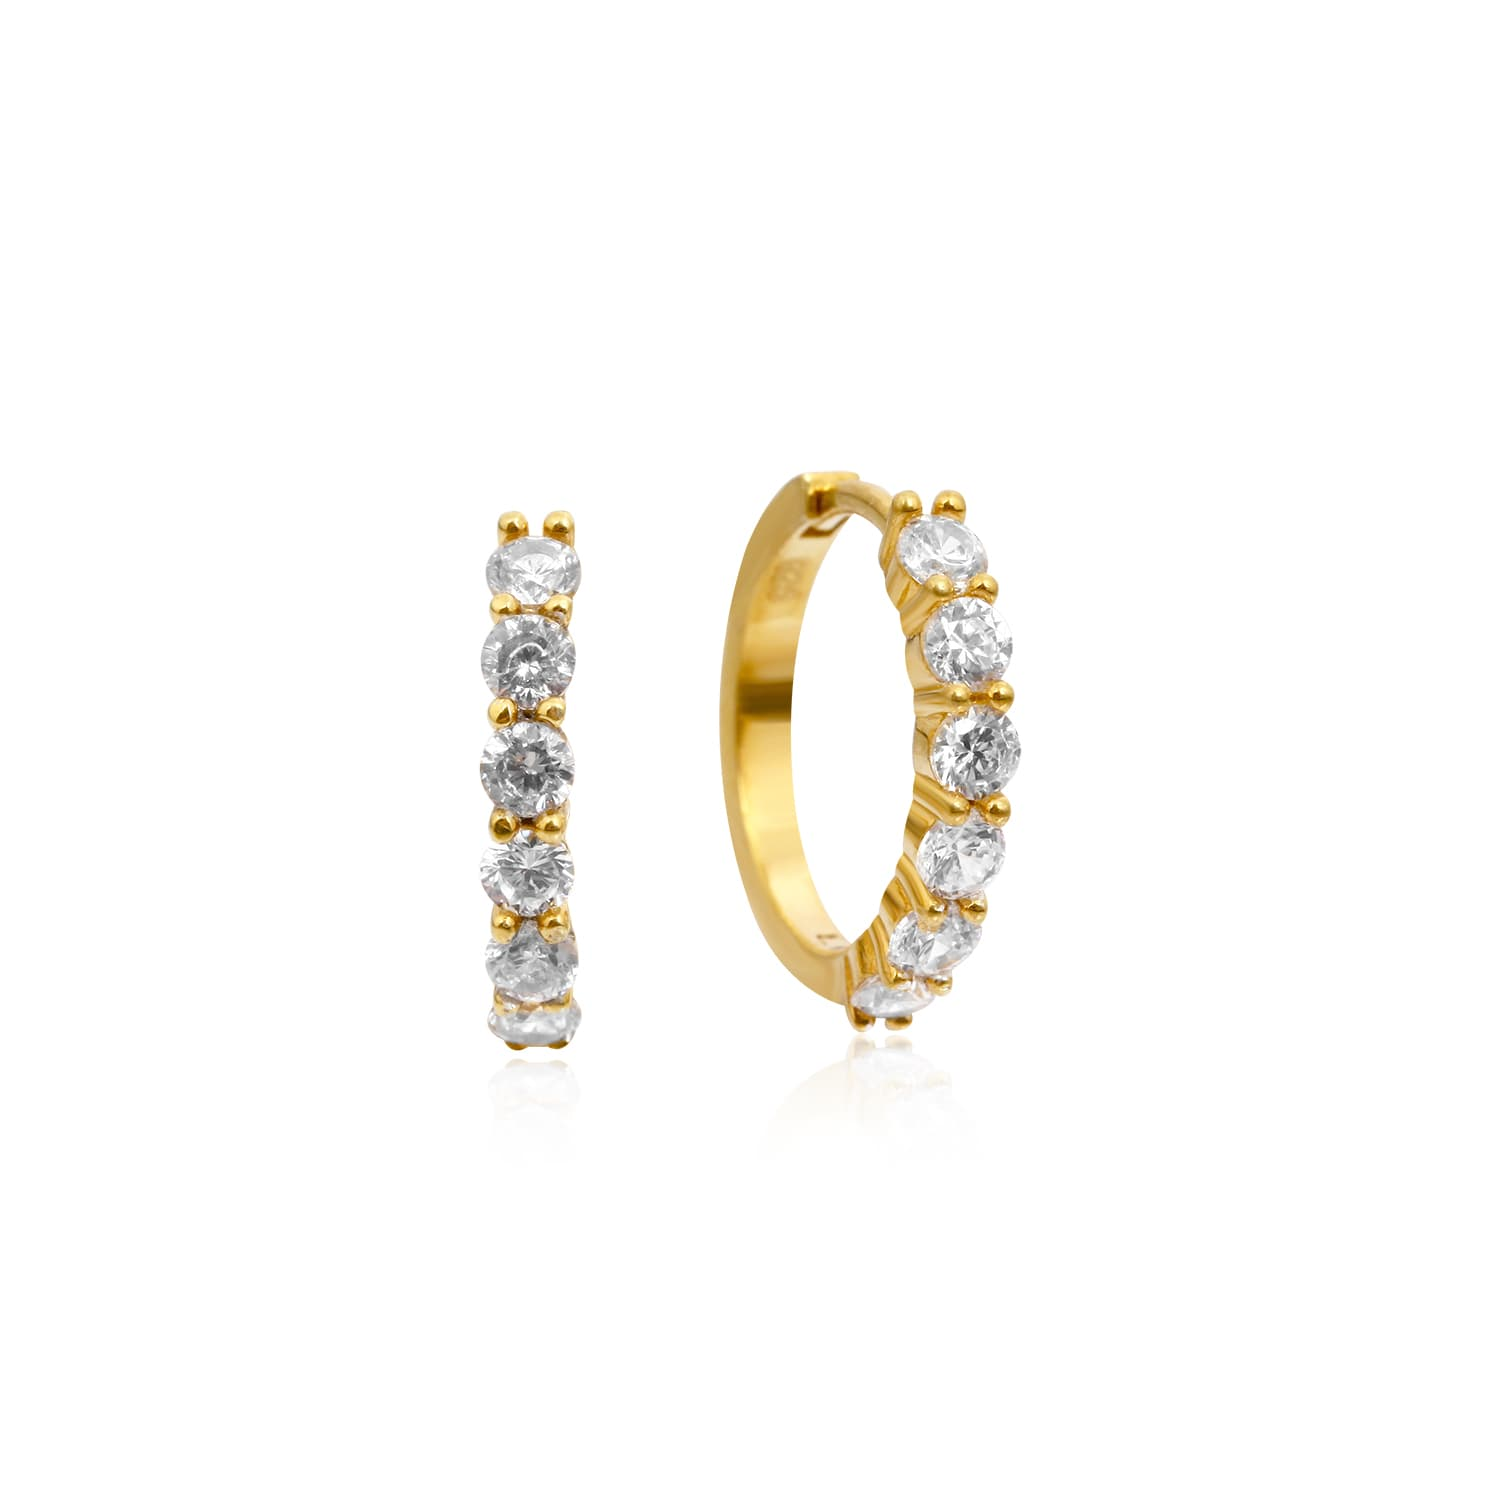 BOLD MAXI PAVE RING EARRINGS